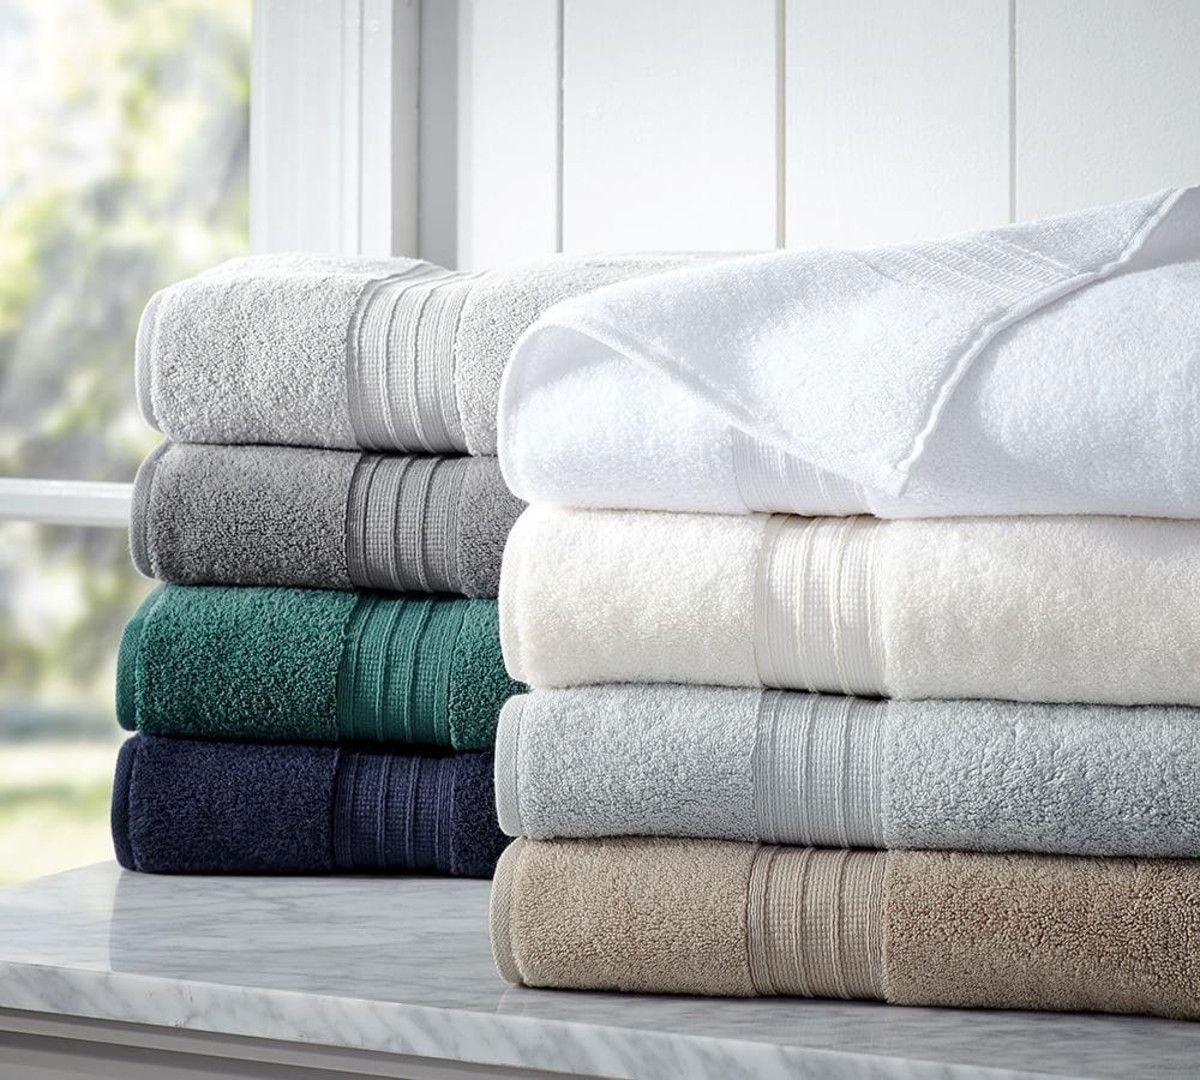 Hydrocotton Bath Towels Unique Hydrocotton Bath Towels  Home  Pinterest  Towels And Bath Inspiration Design